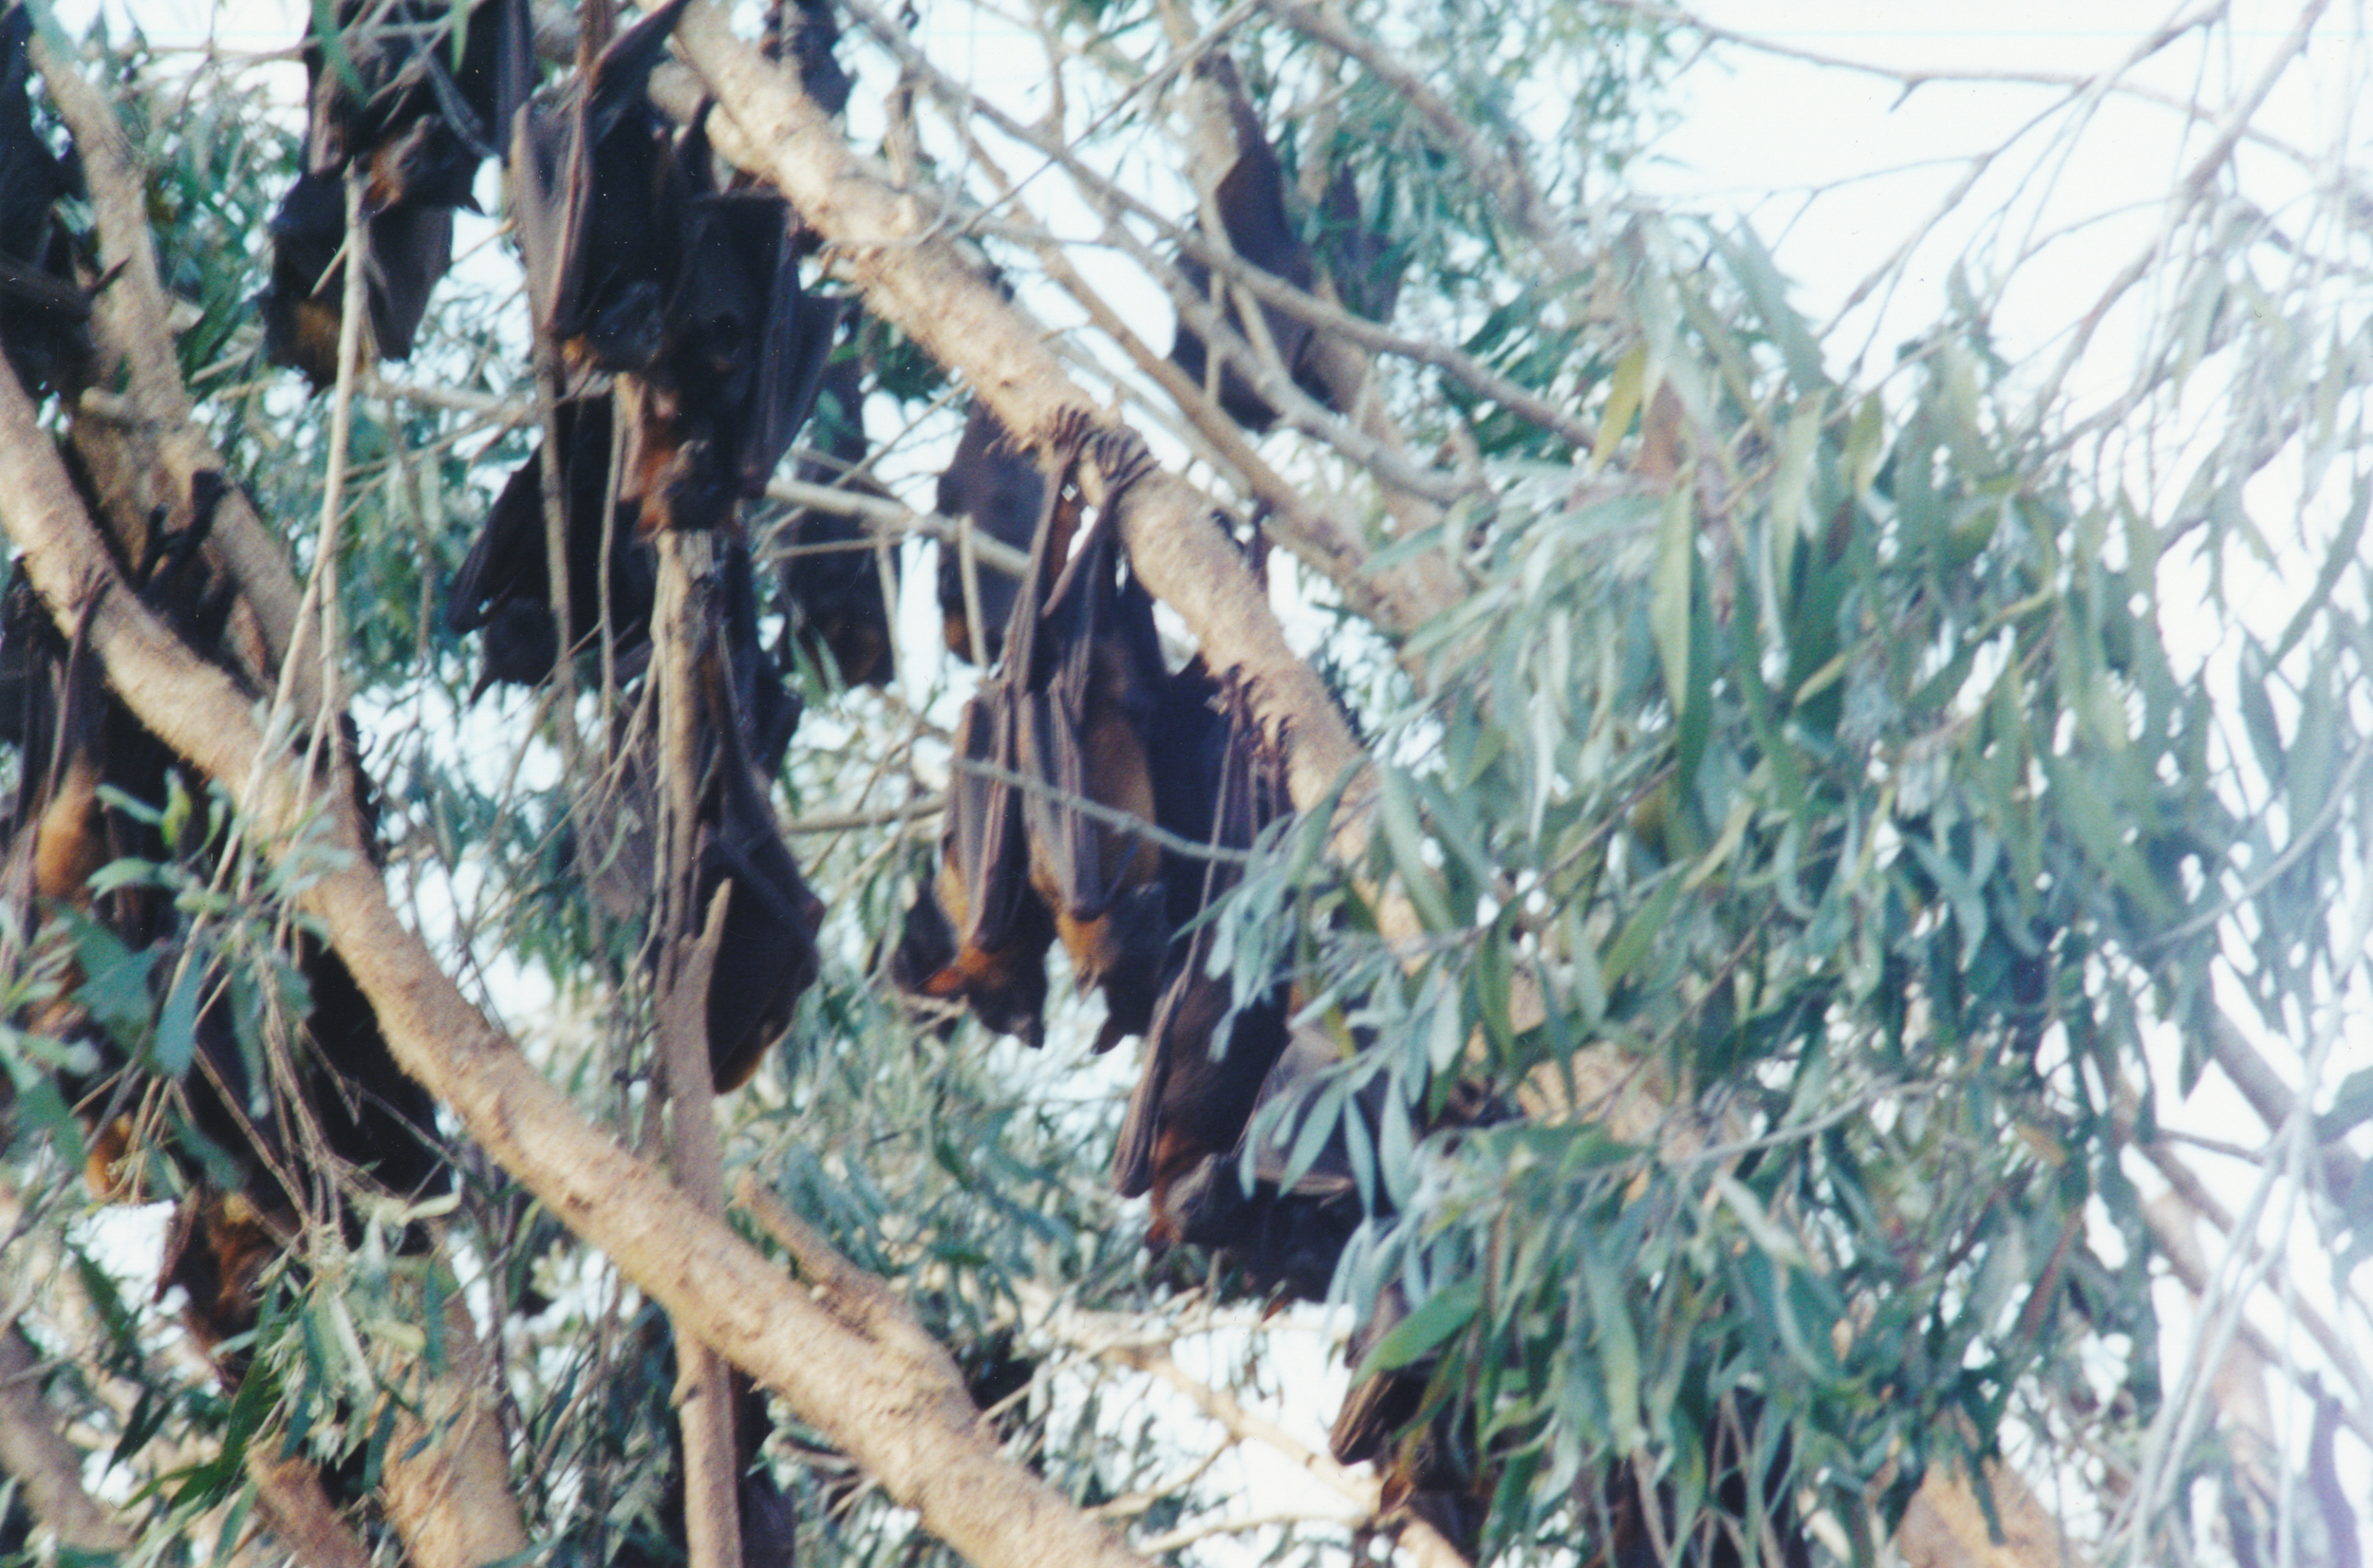 Fruit bats sleeping upside down. In this area, there were hundreds,clustered in a few trees.